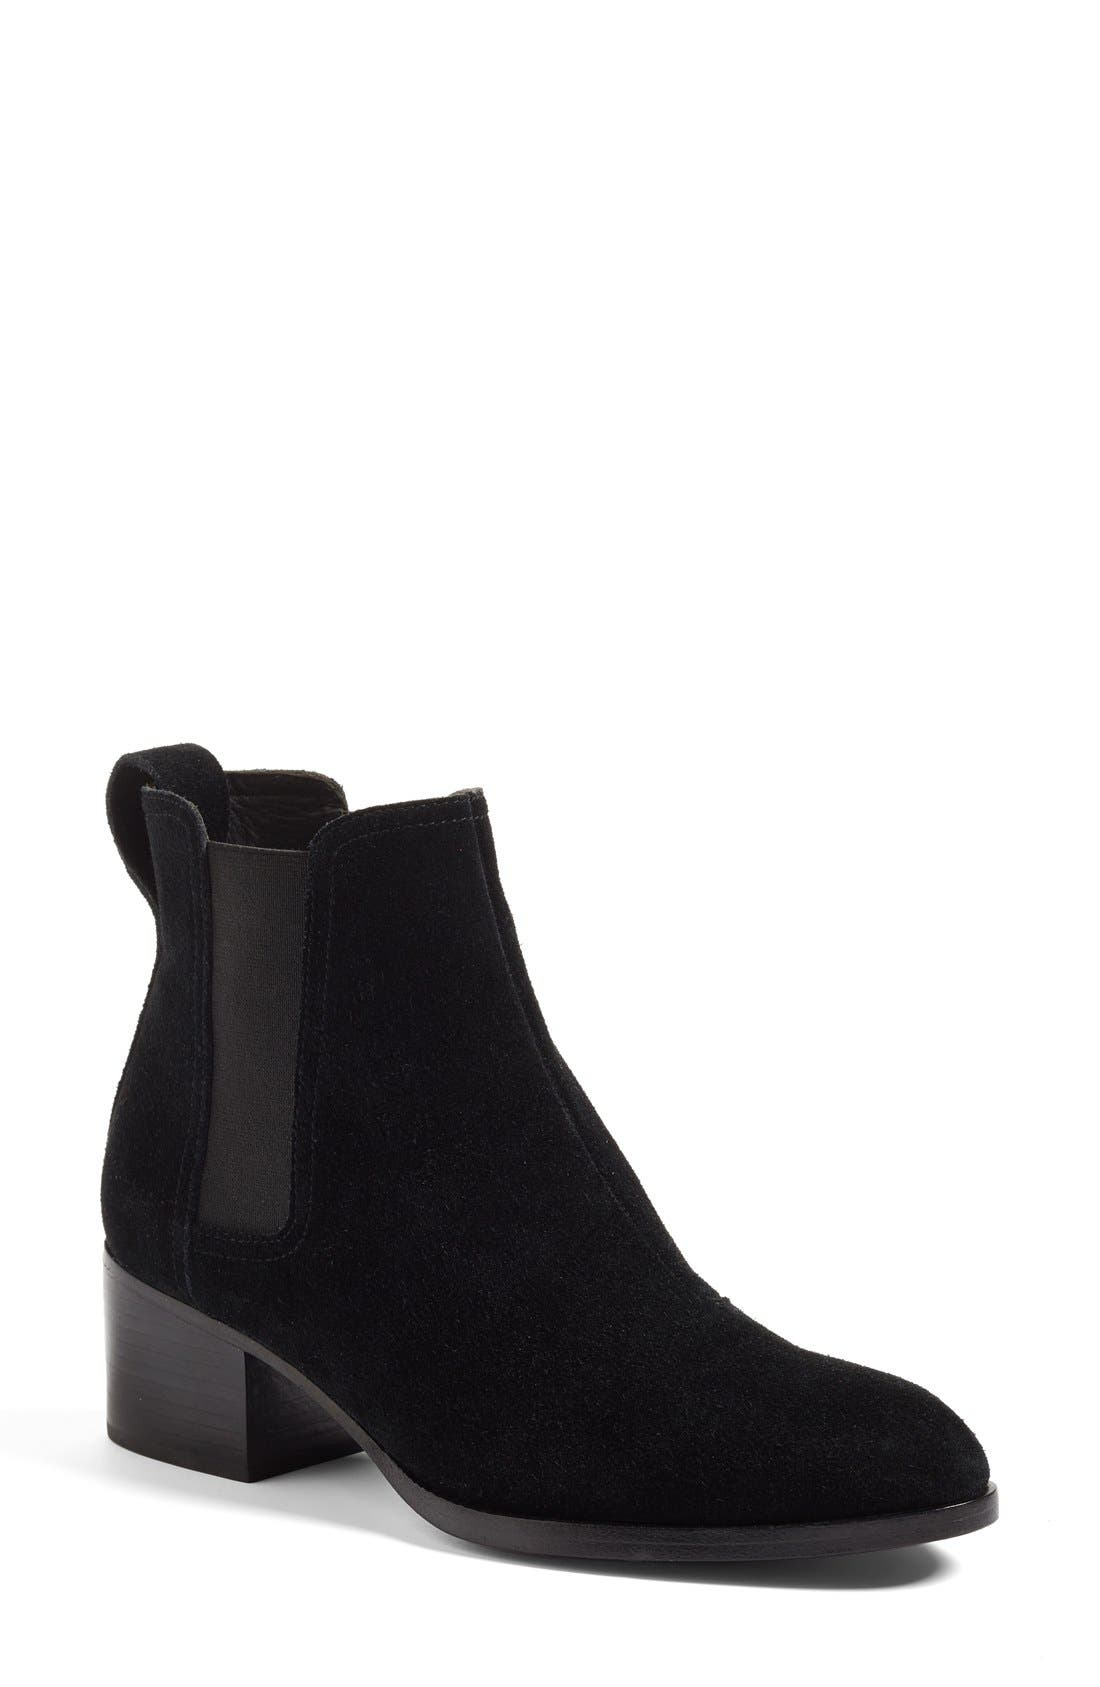 RAG & BONE 'Walker' Bootie